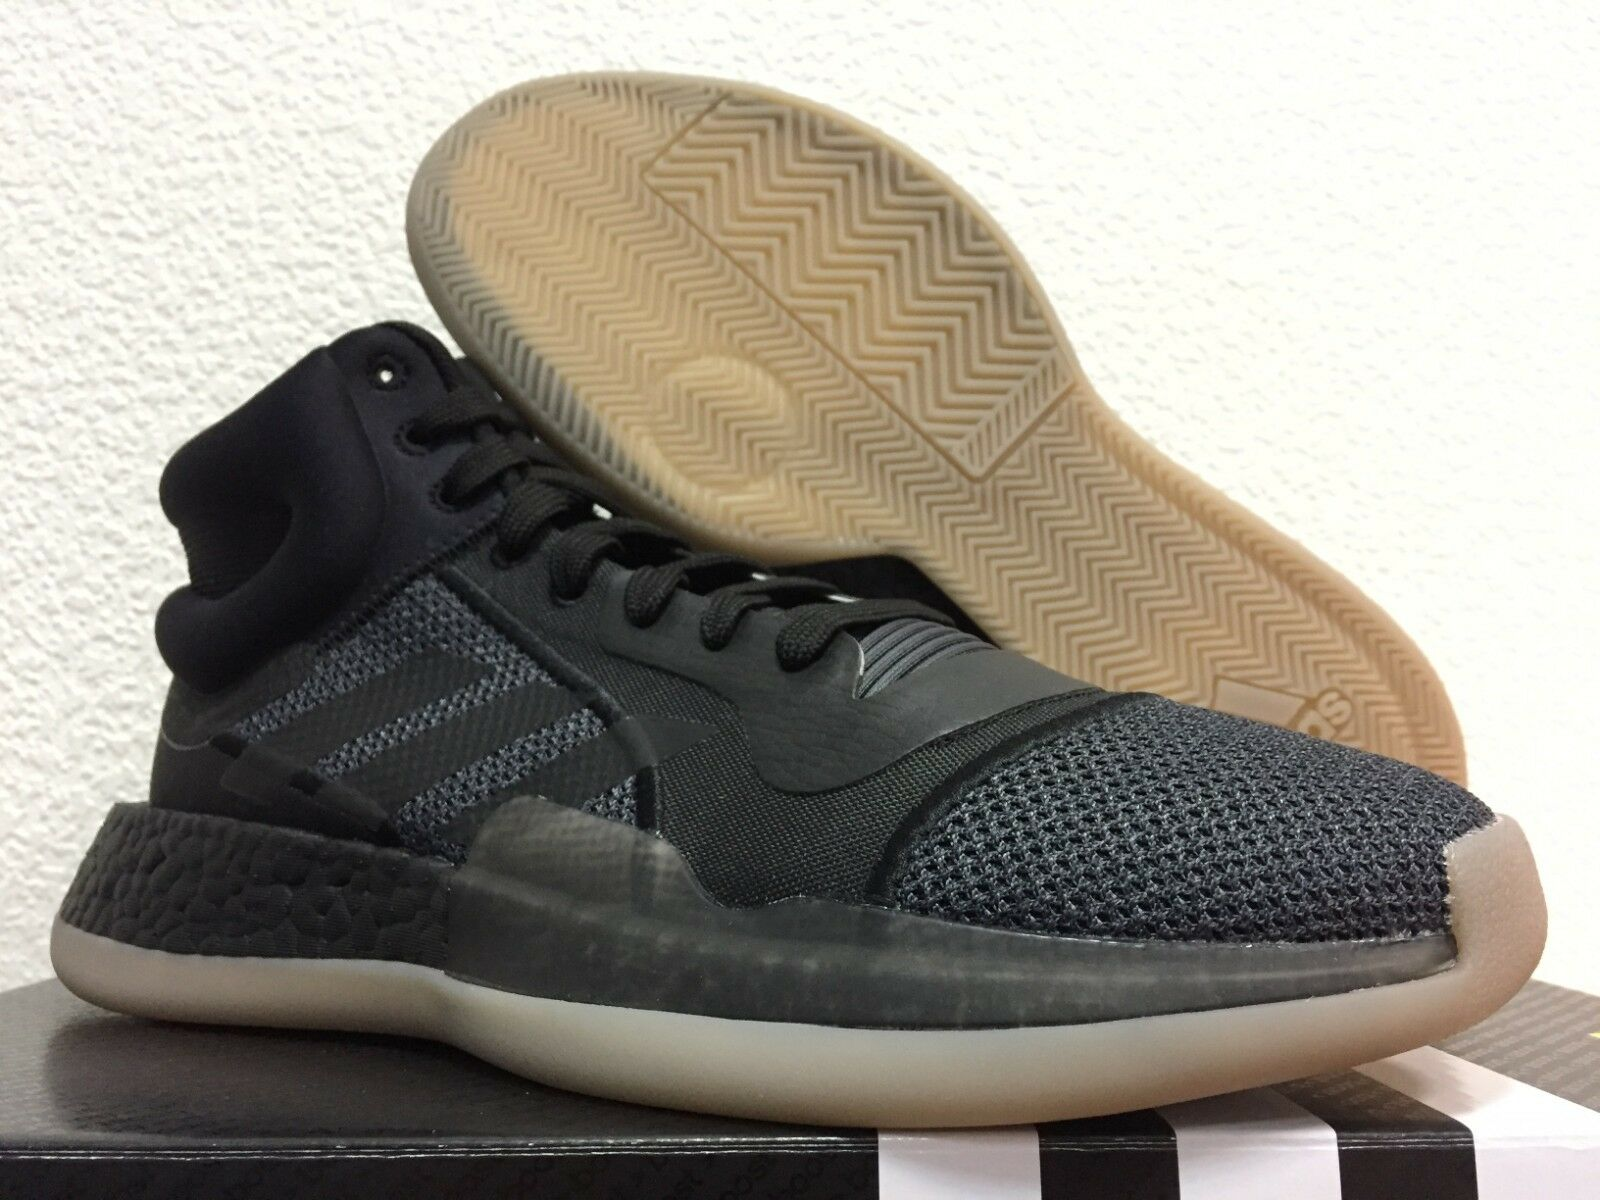 2019 Mens DS adidas Marquee Boost BB9300 Basketball Sneakers 8-14 us Original PE